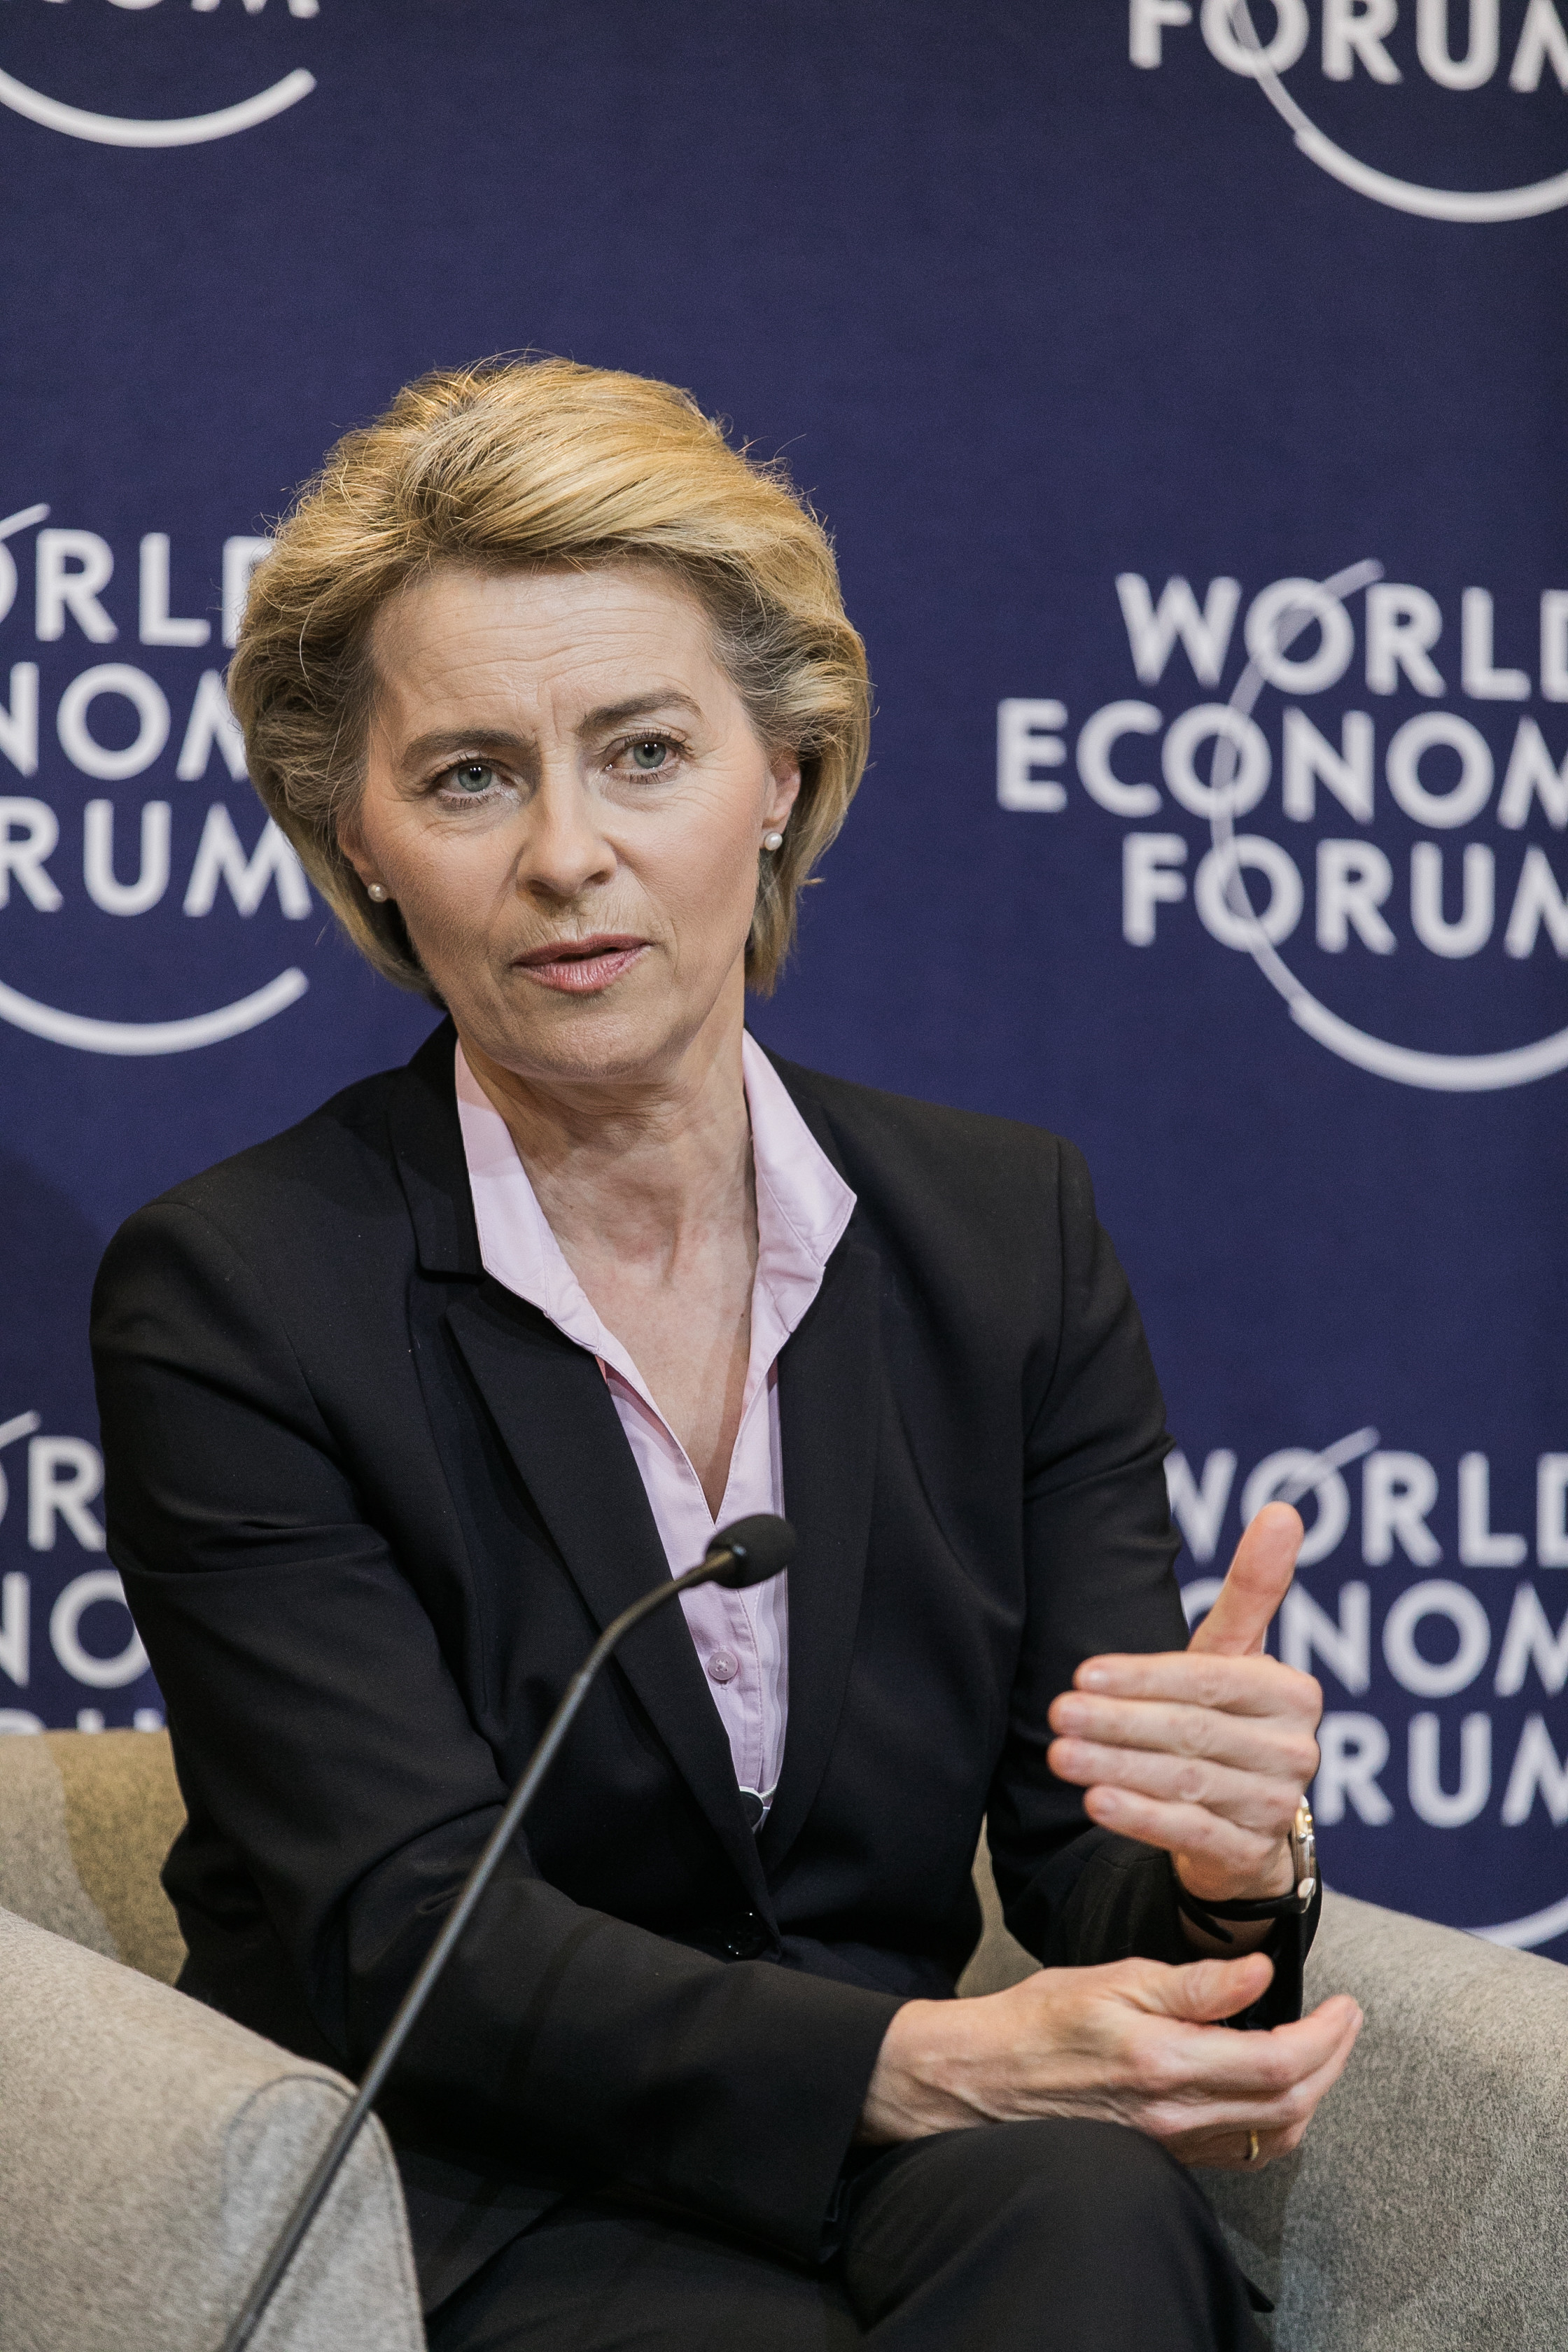 Ursula von der Leyen, Federal Minister of Defence of Germany; Co-Chair of the World Economic Forum on the Middle East and North Africa at the World Economic Forum on the Middle East and North Africa 2017. Copyright by World Economic Forum / Jakob Polacsek